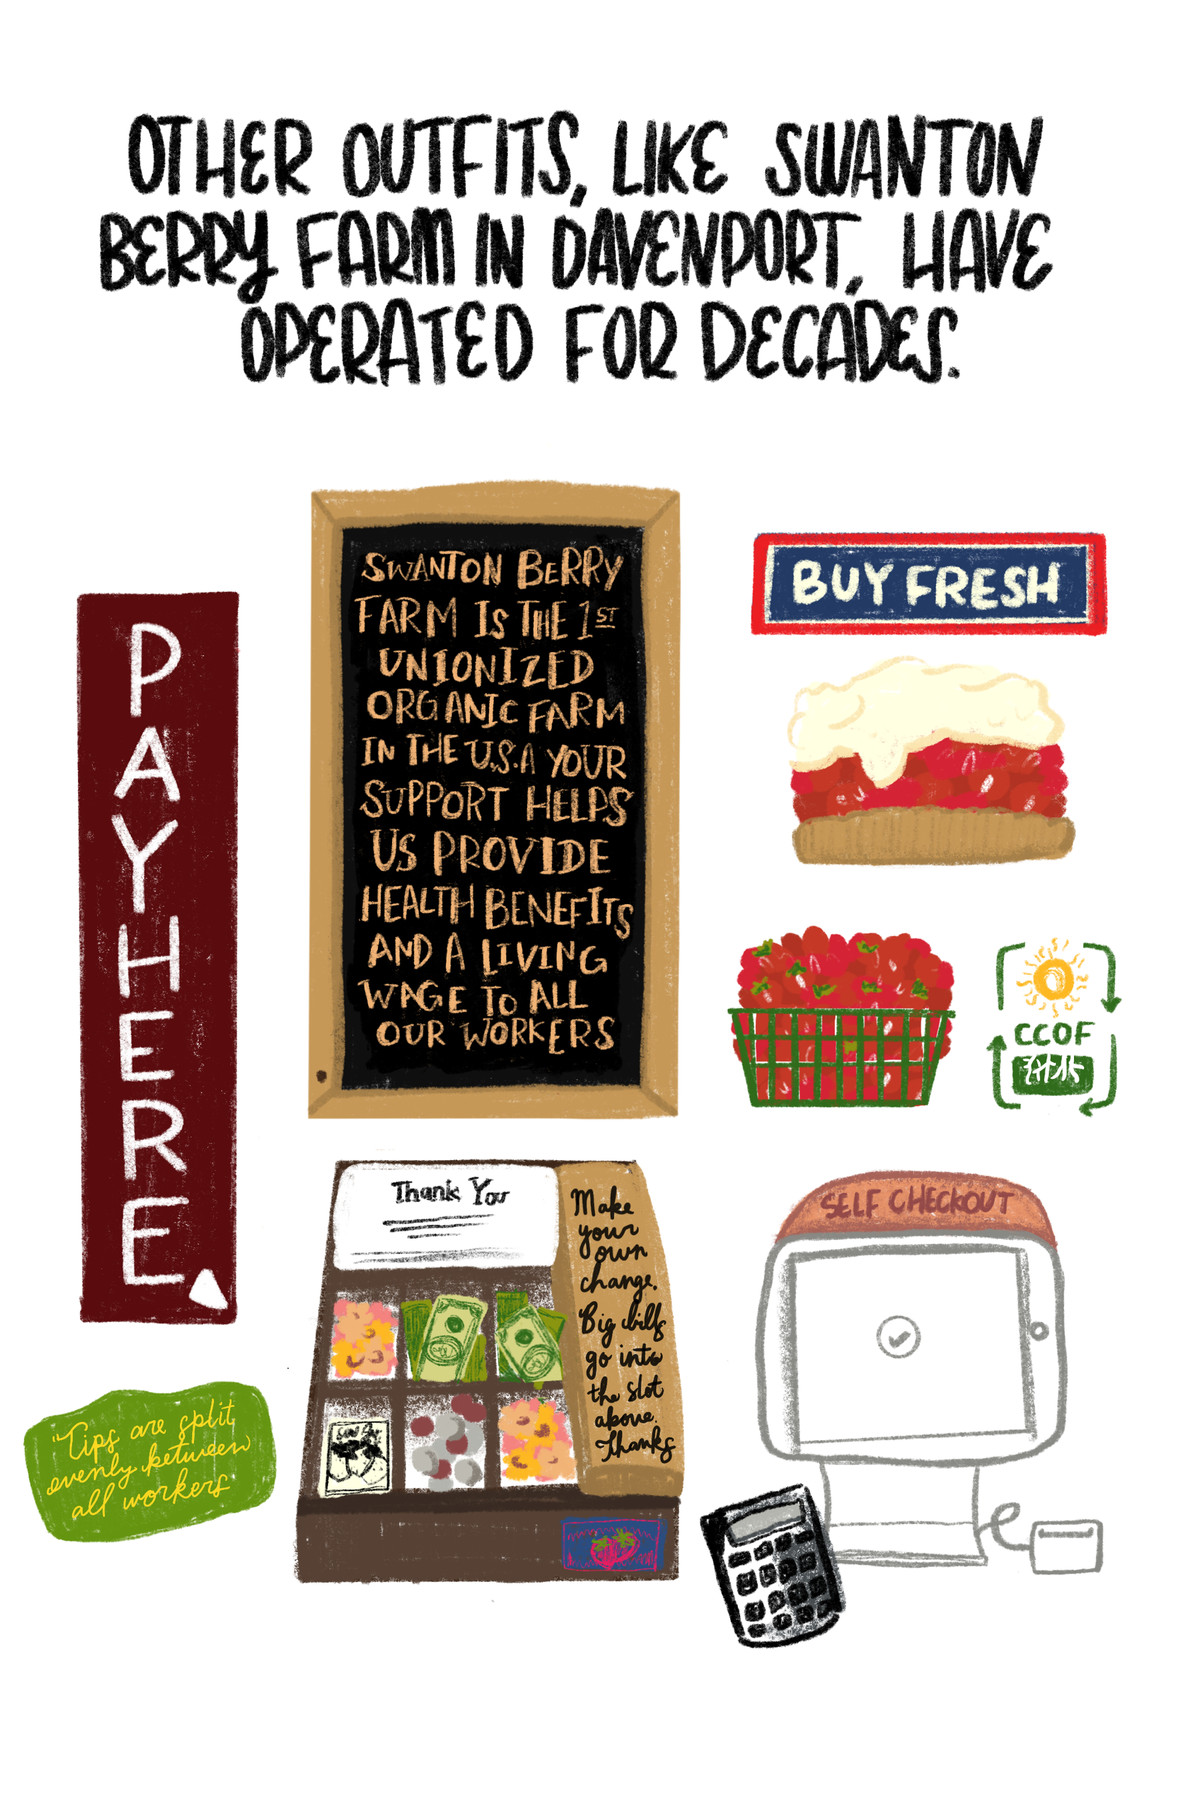 """""""Other outfits, like Swanton Berry Farm in Davenport, have operated for decades."""" [Below the quote is a sign that reads """"Swanton Berry Farm is the first unionized organic farm in the U.S.A. Your support helps us provide health benefits and a living wage to all our workers."""" Below it is an illustration of a cash box, boxes of berries, a calculator, and a sign announcing that """"tips are split evenly between all workers.""""]"""